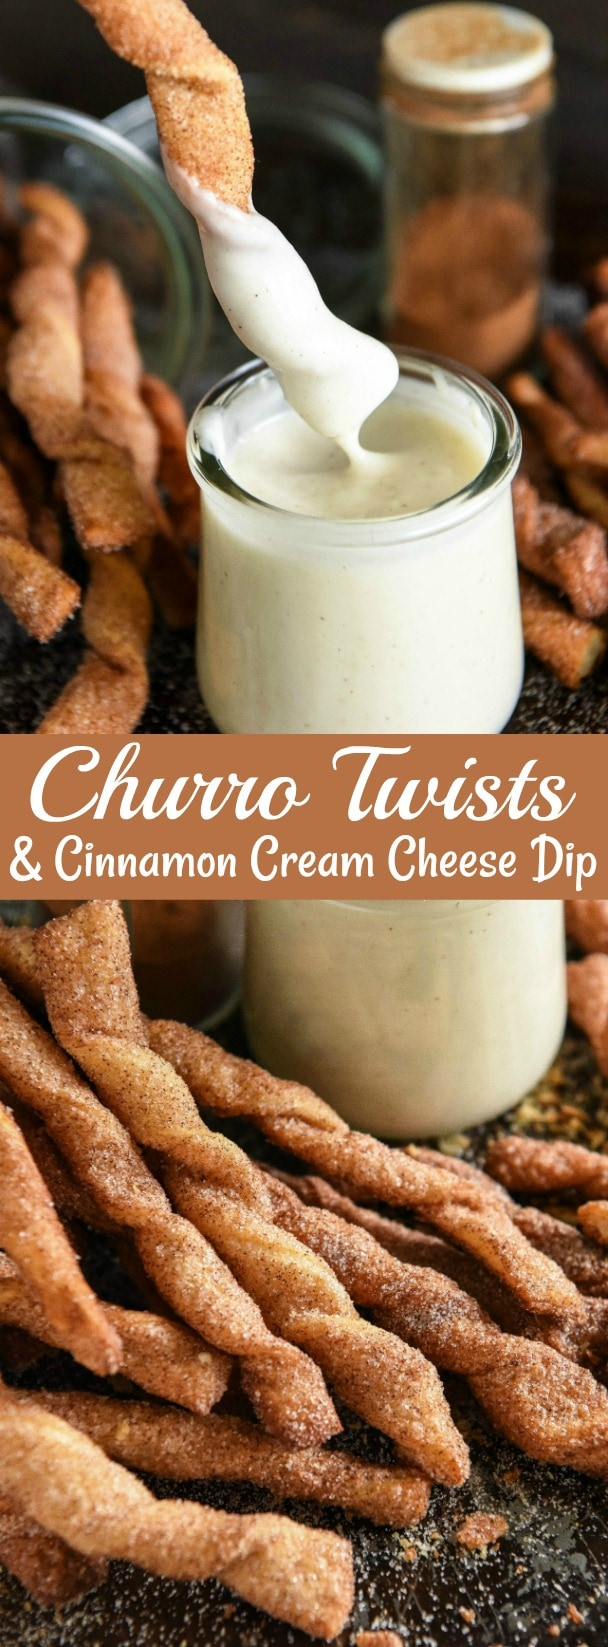 Churro Twists with a Cinnamon Cream Cheese Dip! Just 15 minutes to make! #Churro #CrescentDough #Cinnamon